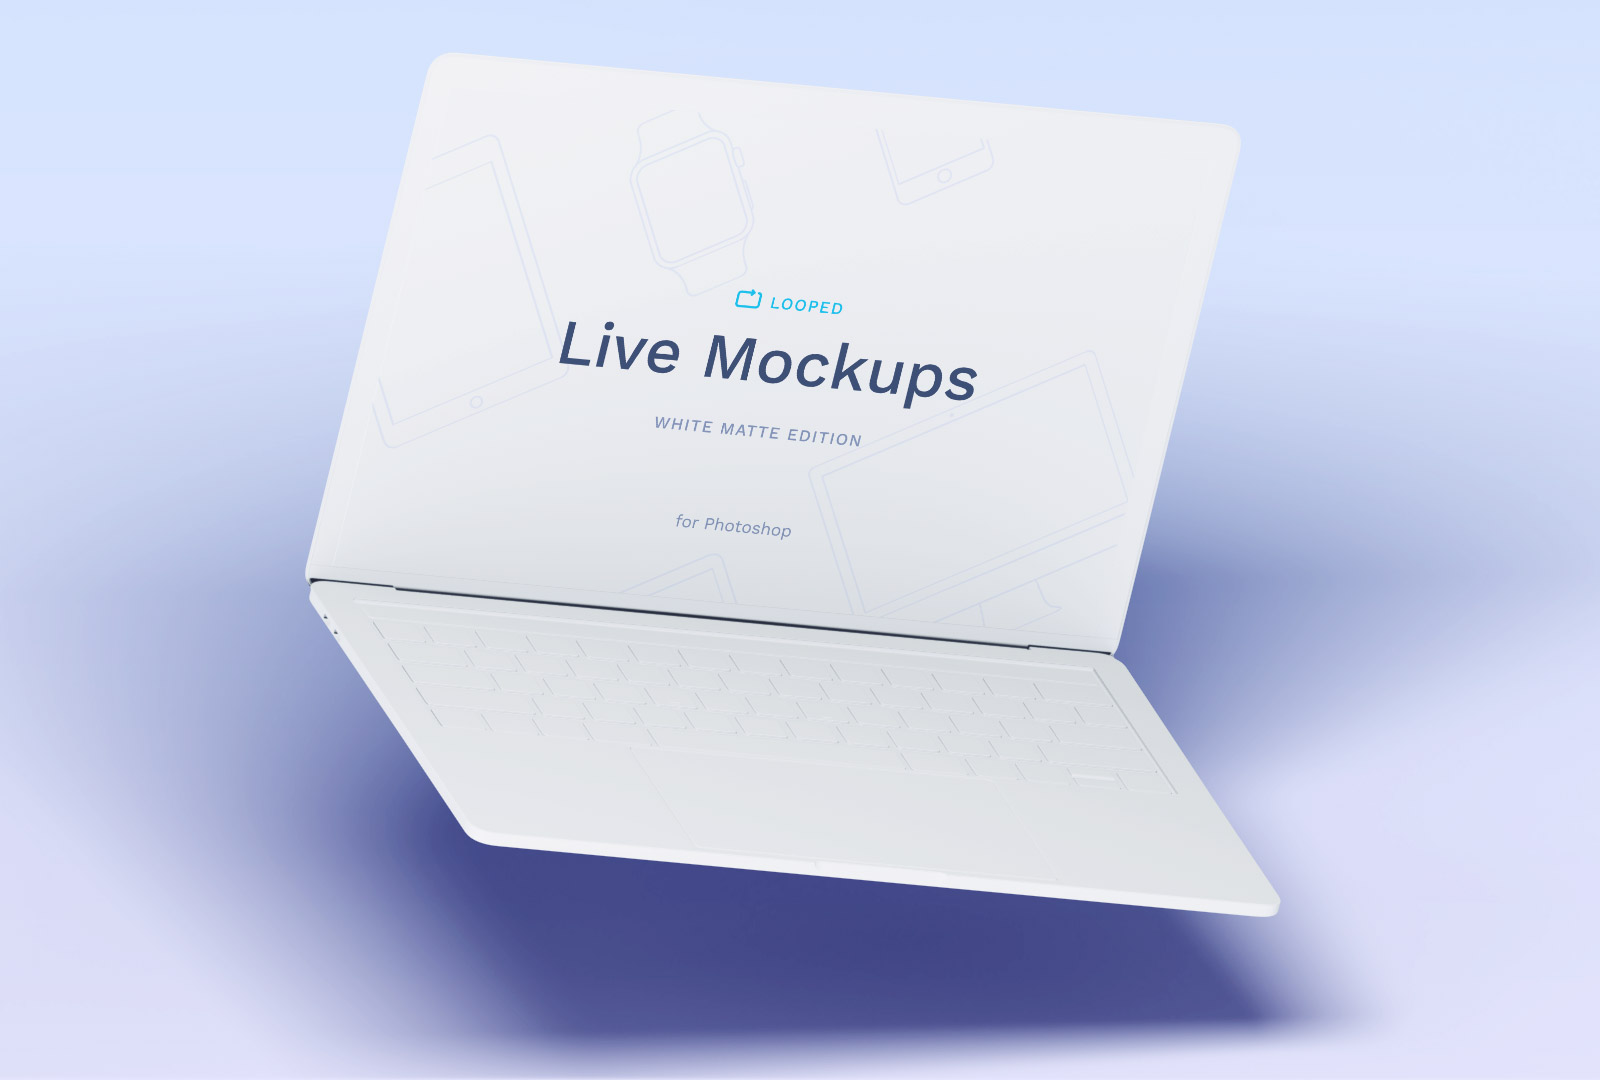 Free White Macbook Mockup PSD